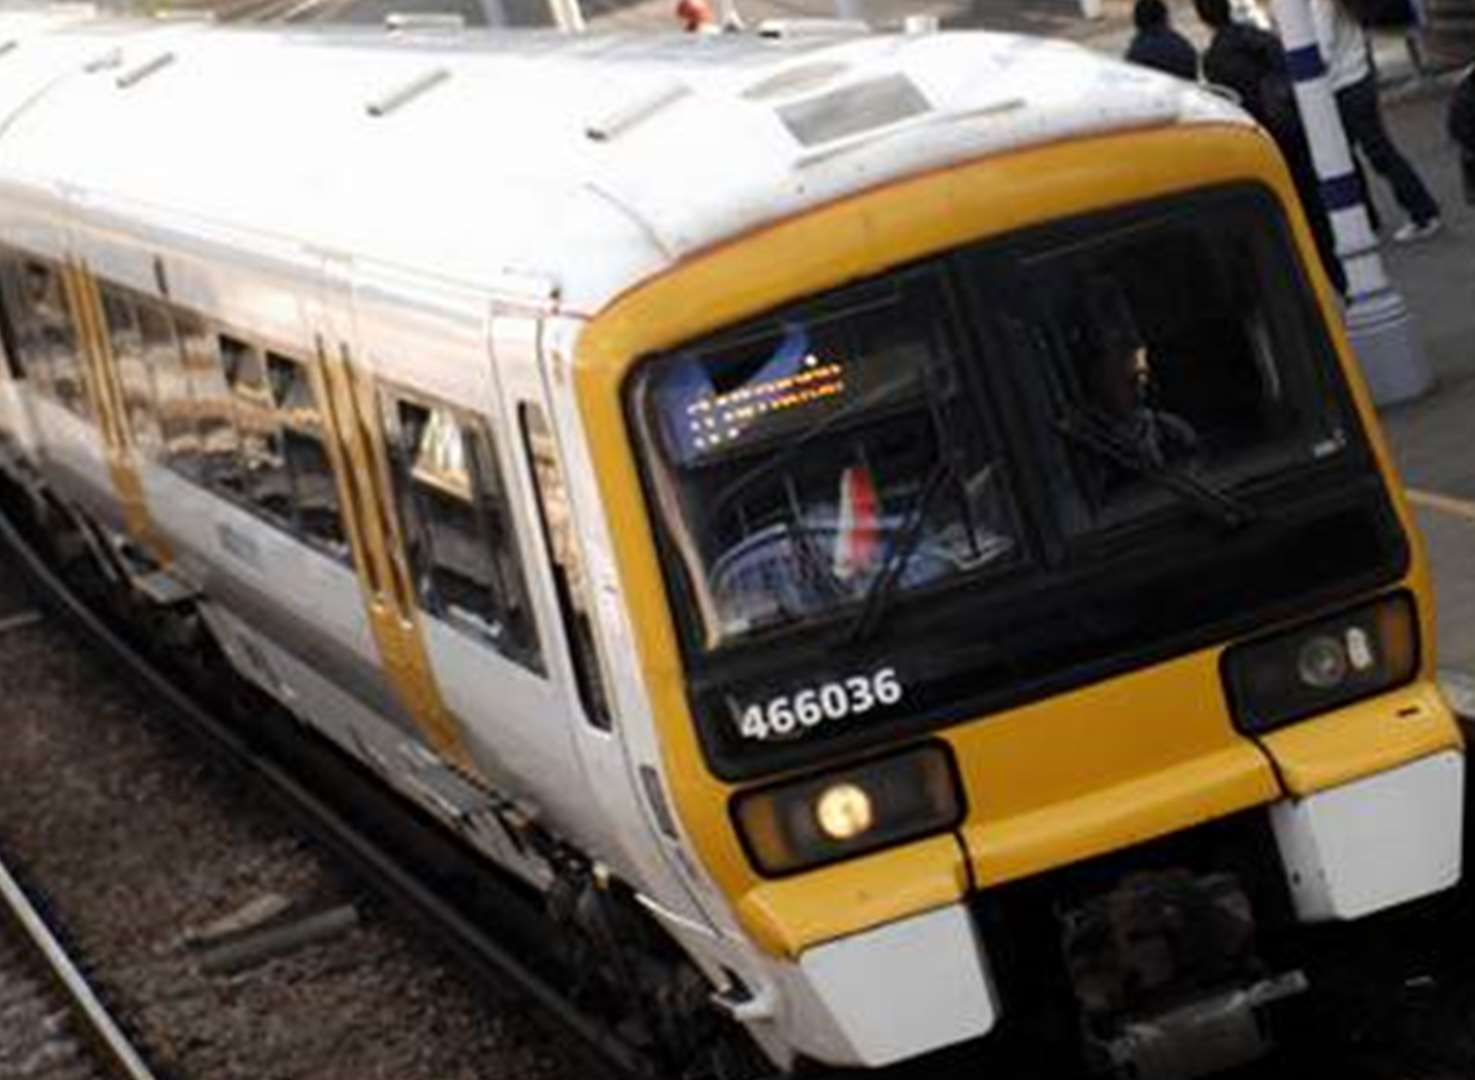 Southeastern one of UK's least trusted train companies